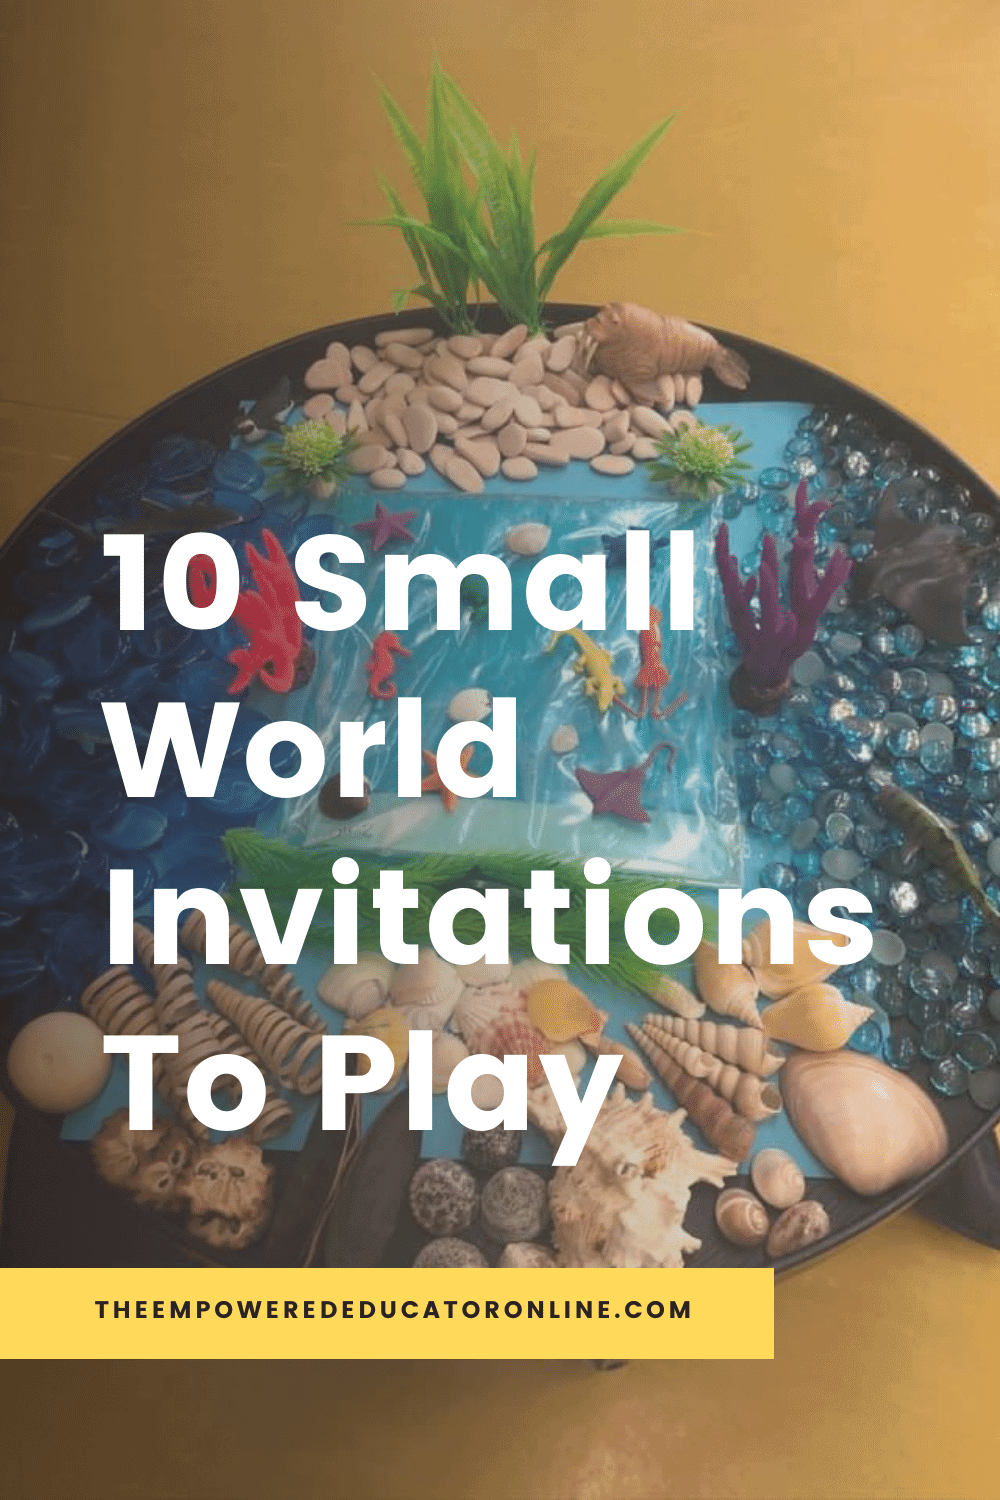 The Empowered Educator shows us why setting up small world invitations to play doesn't need to be complicated, time consuming or Insta worthy! Educators, teachers and homeschool families will love these 10 ideas shared by early childhood educators!